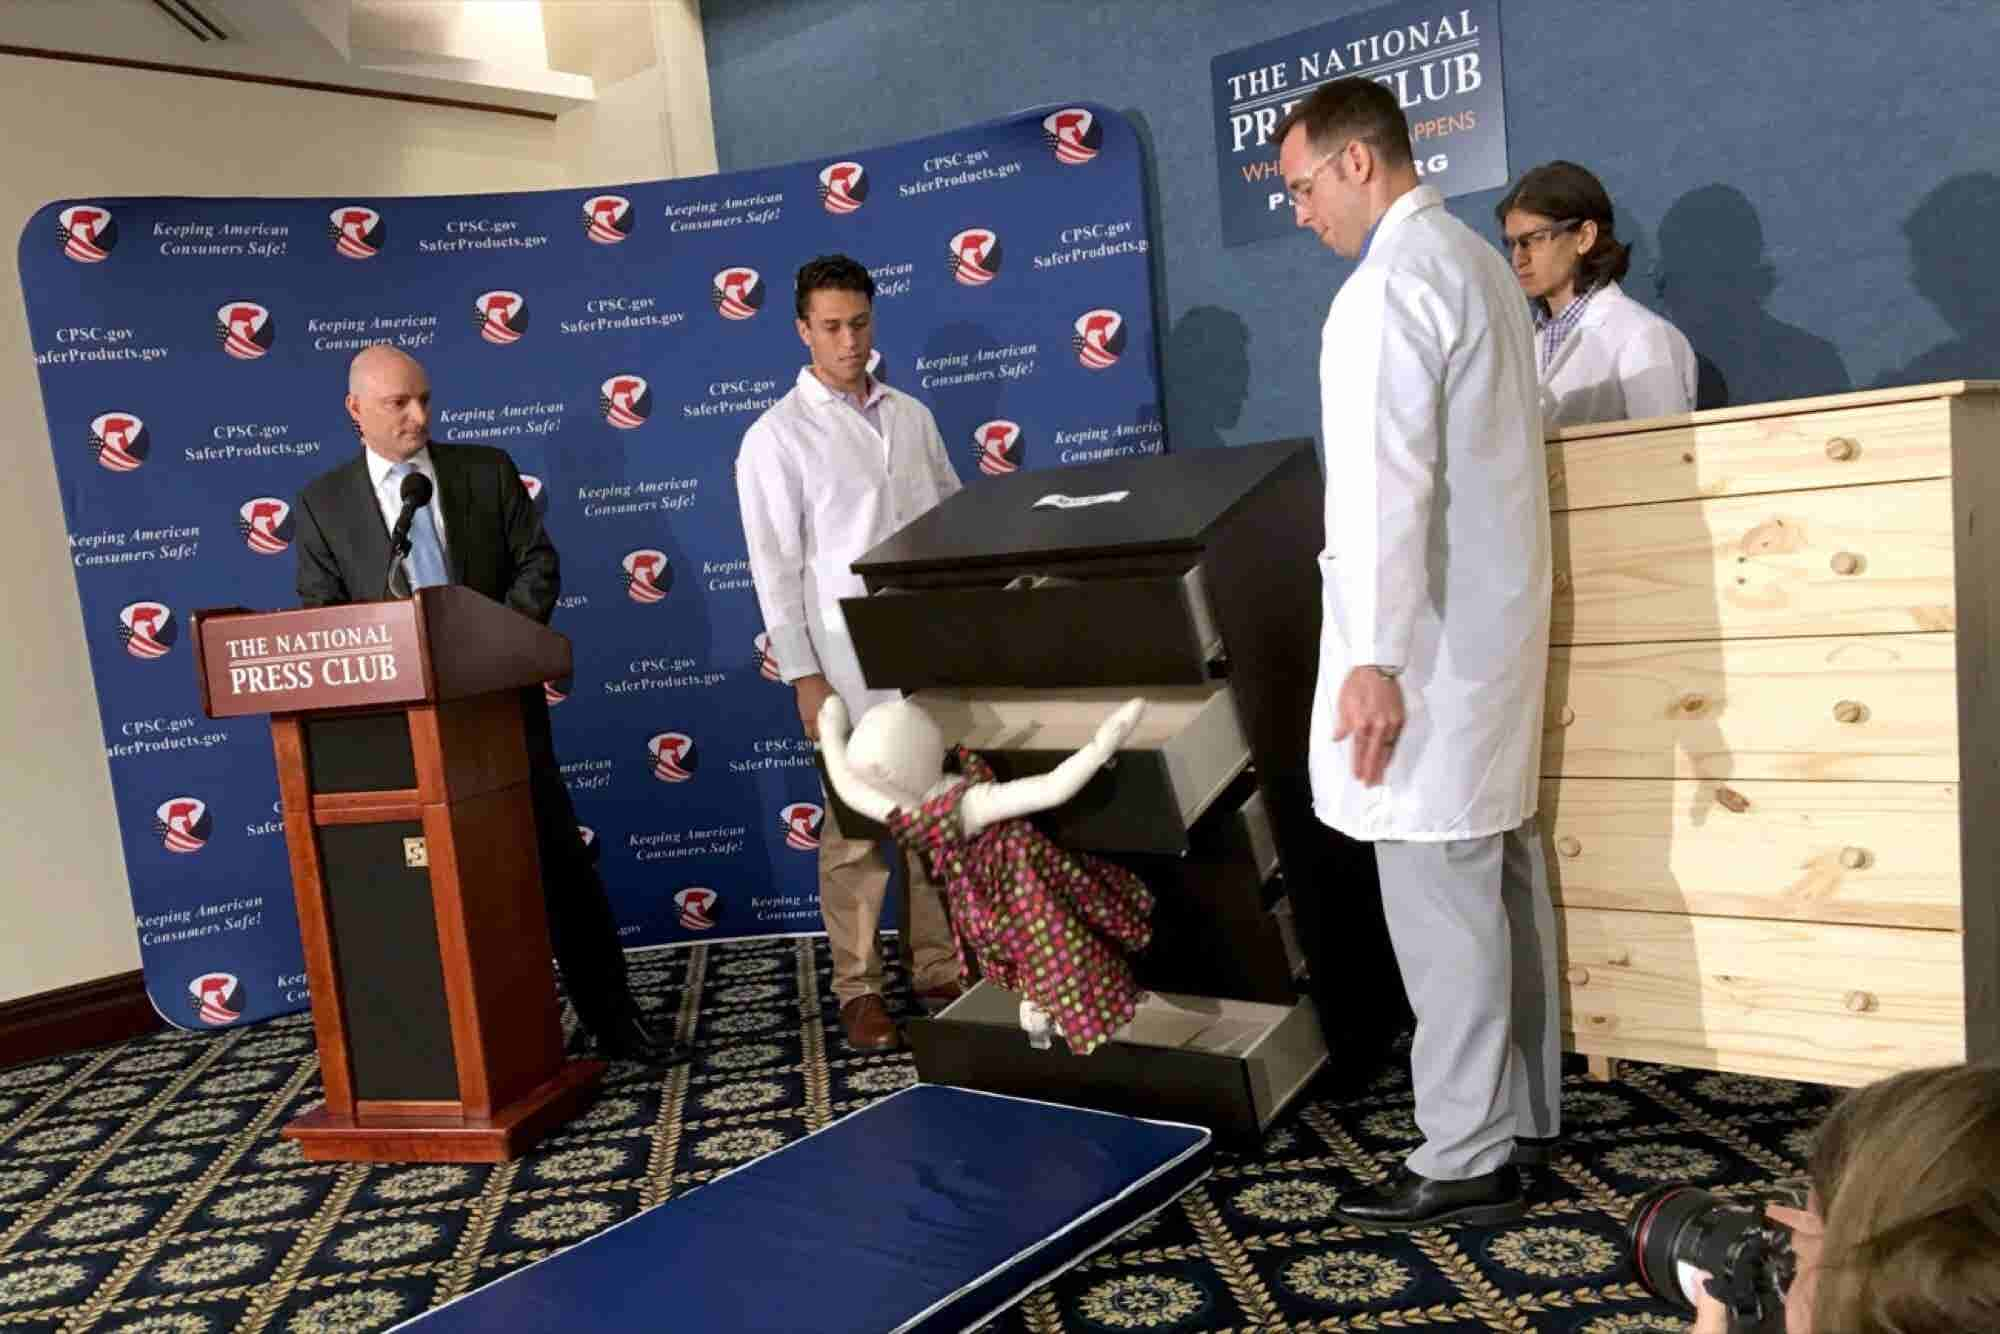 IKEA Recalls 36 Million Chests, Dressers After Six Deaths